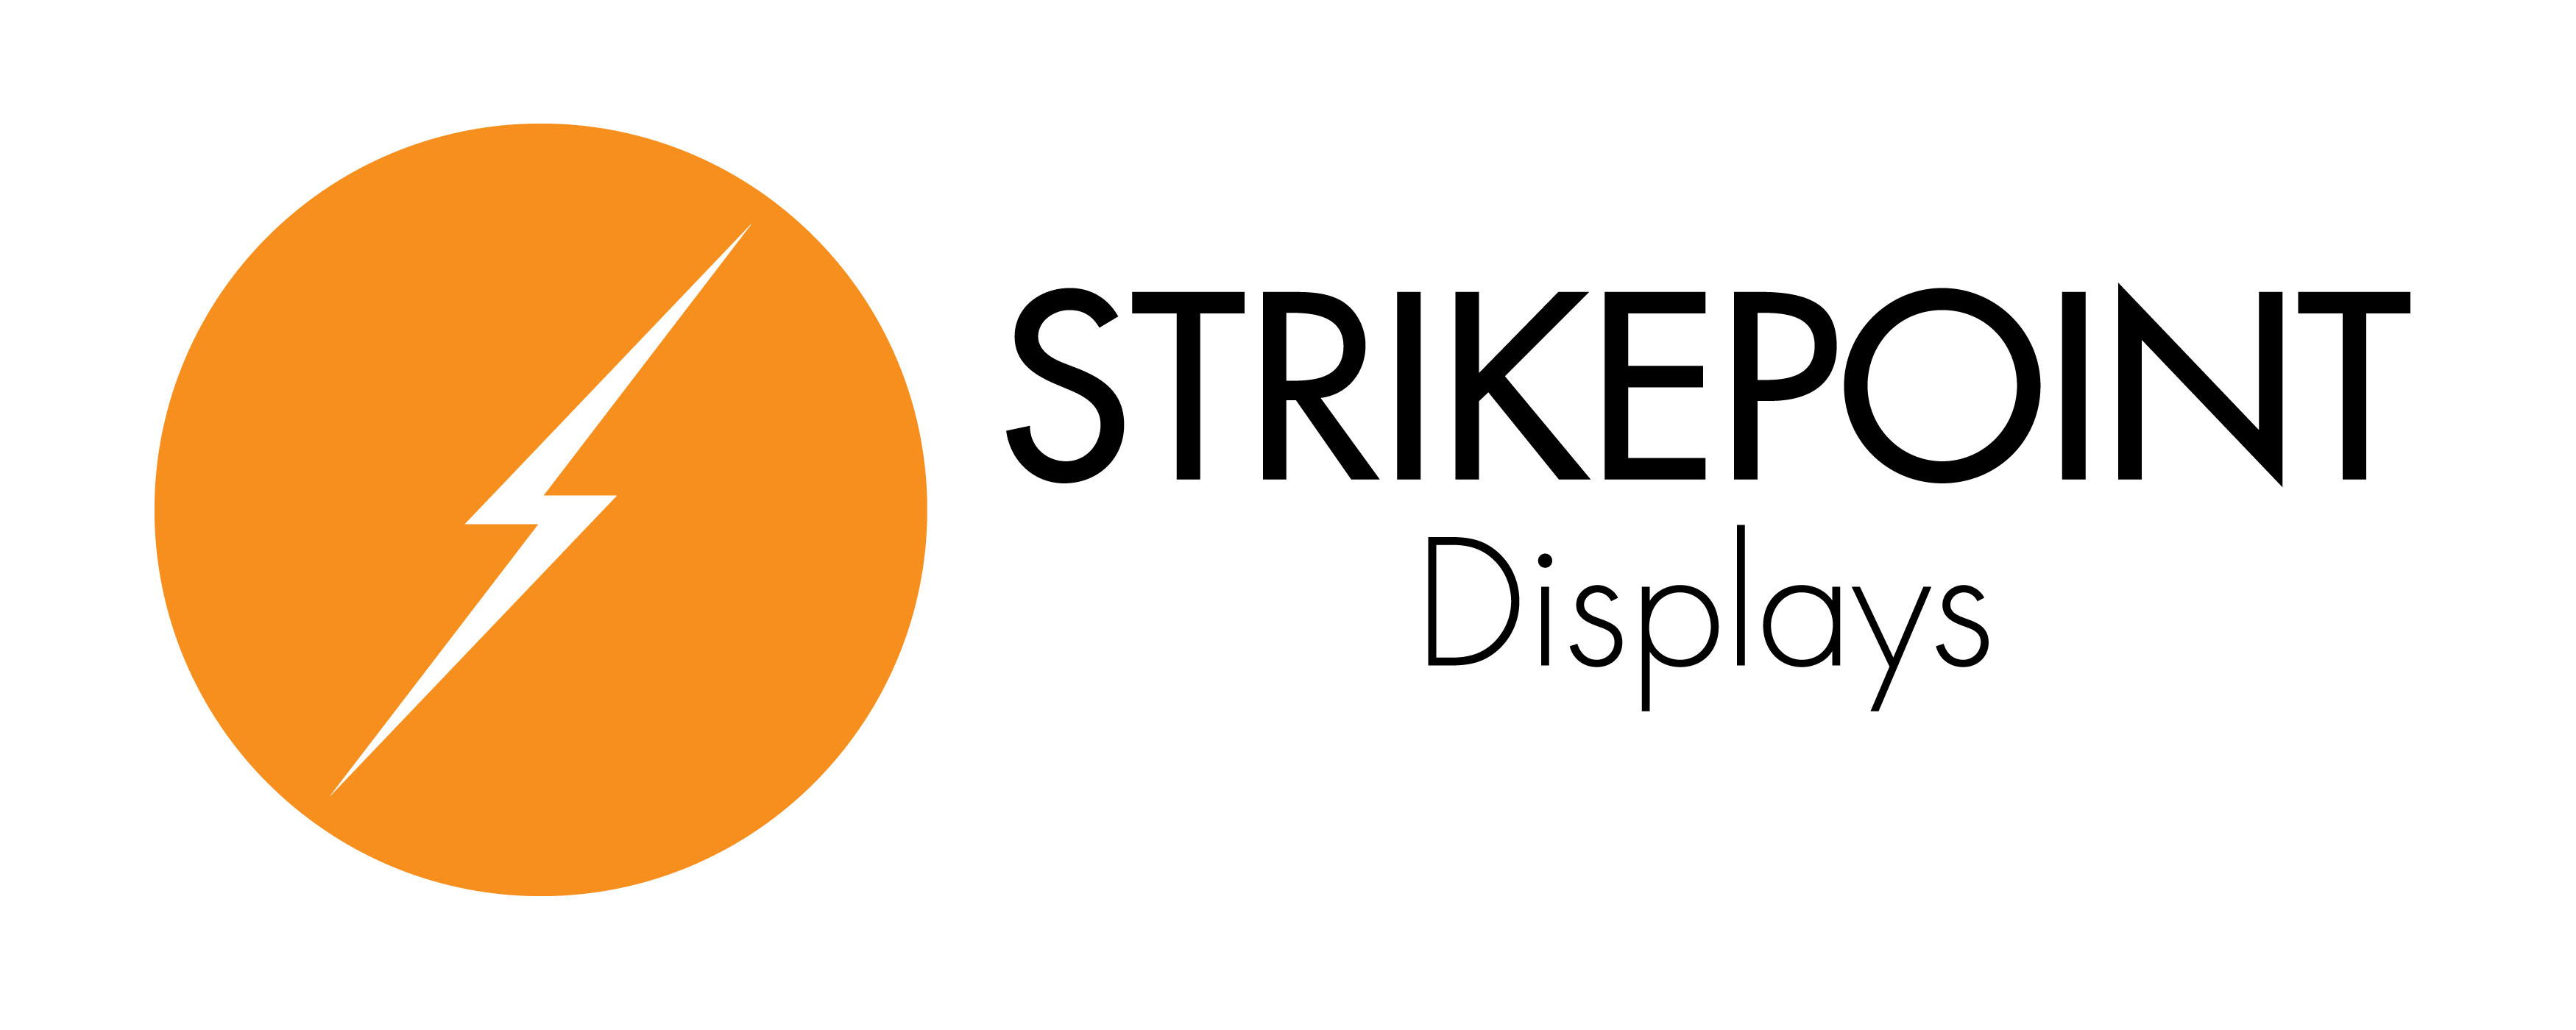 Strikepoint Displays